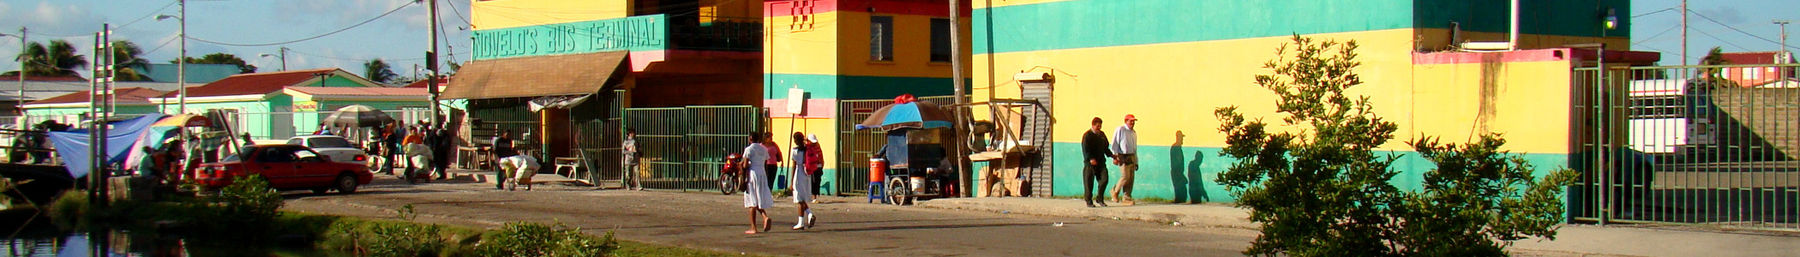 Belize City banner.jpg